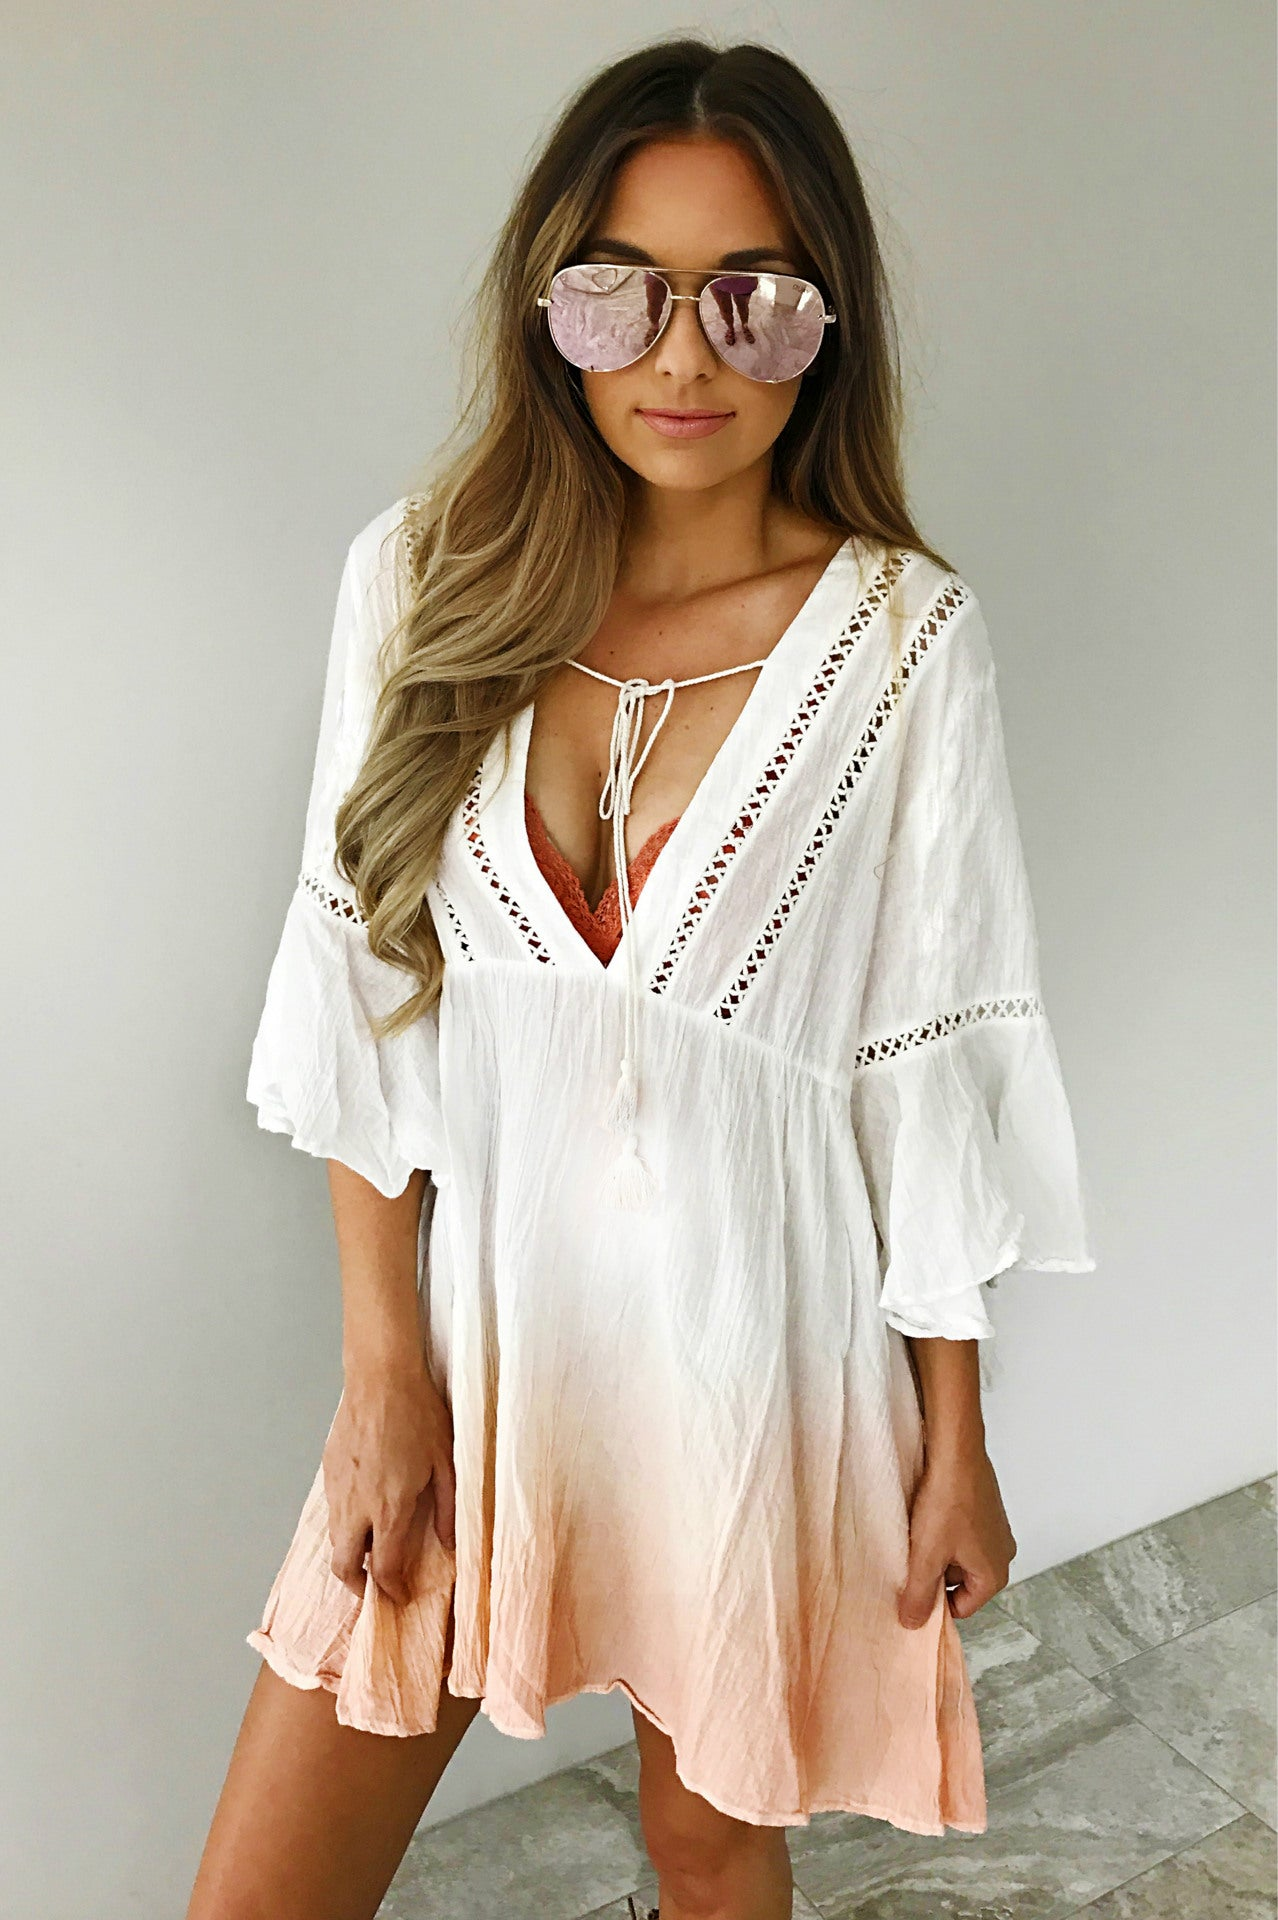 Cute Summer Dress - Swimwear Tunic Coverups - The Voyage Collection